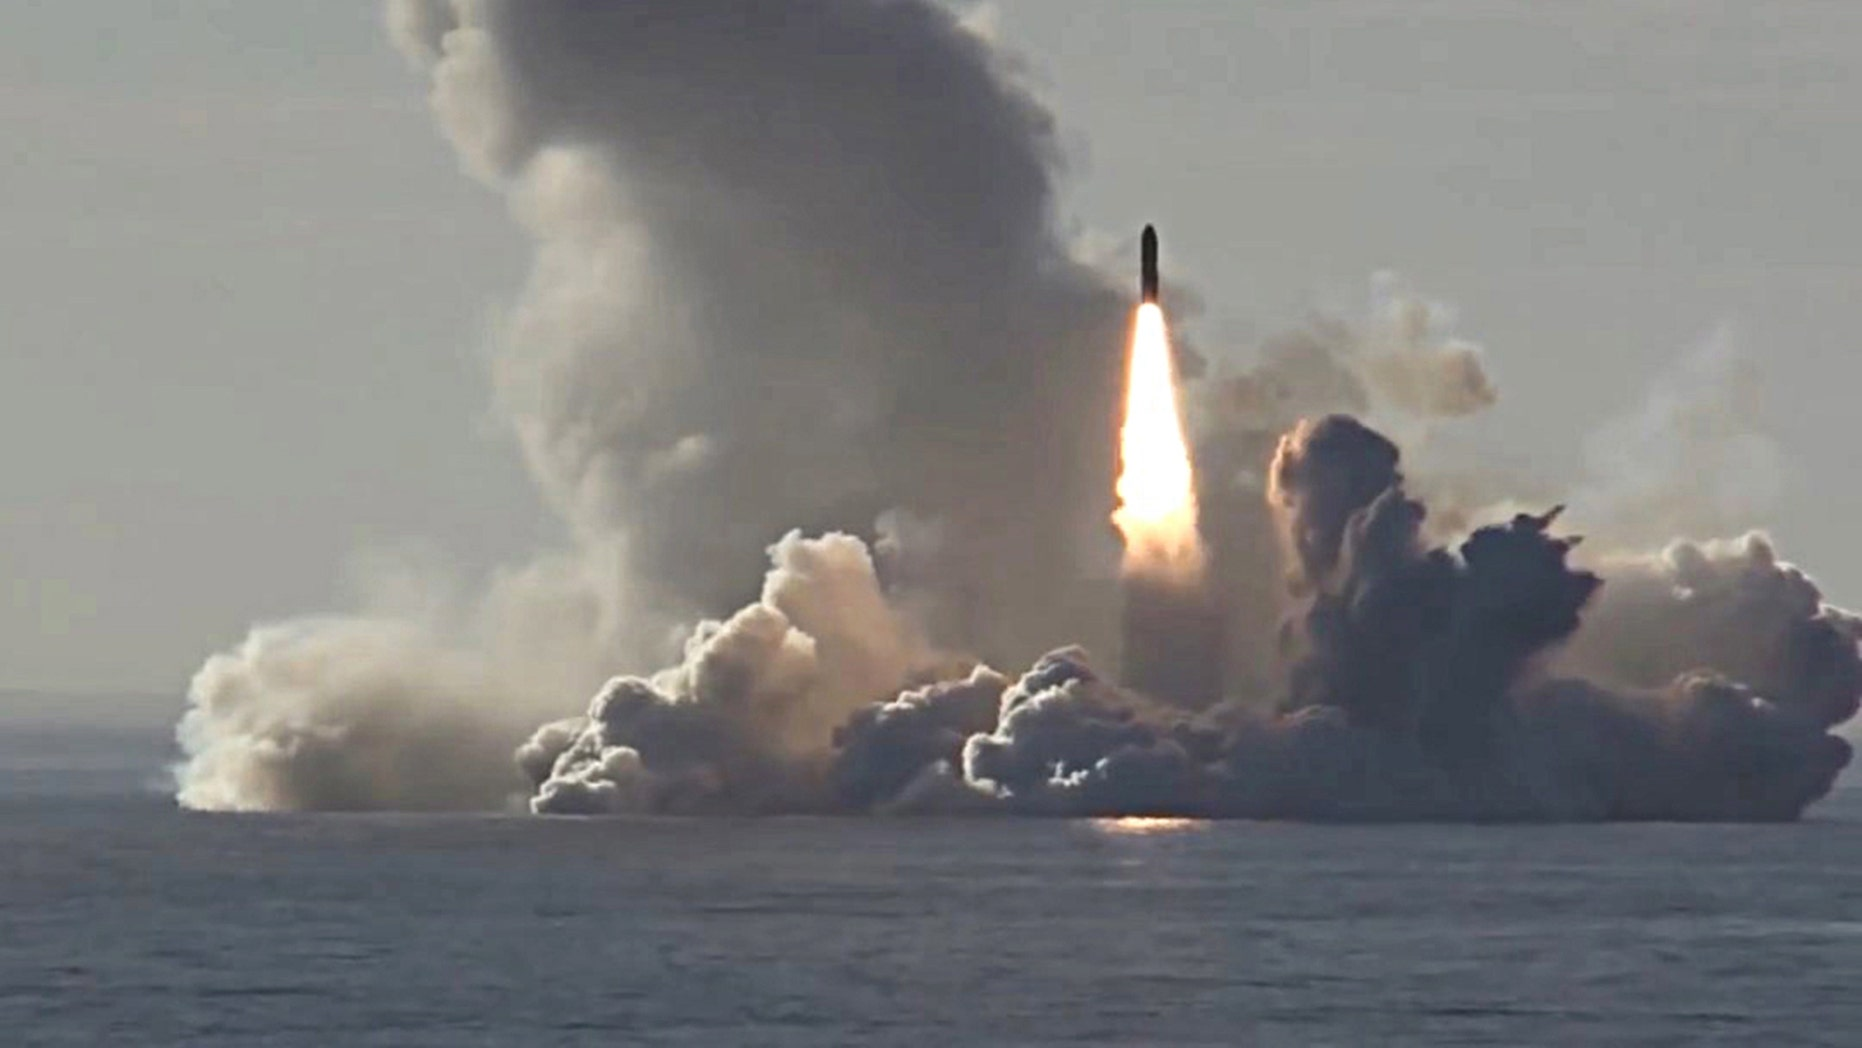 A Bulava missile launched by the Russian Navy Northern Fleet's Project 955 Borei nuclear missile cruiser submarine Yuri Dolgoruky from the White Sea in May 2018.